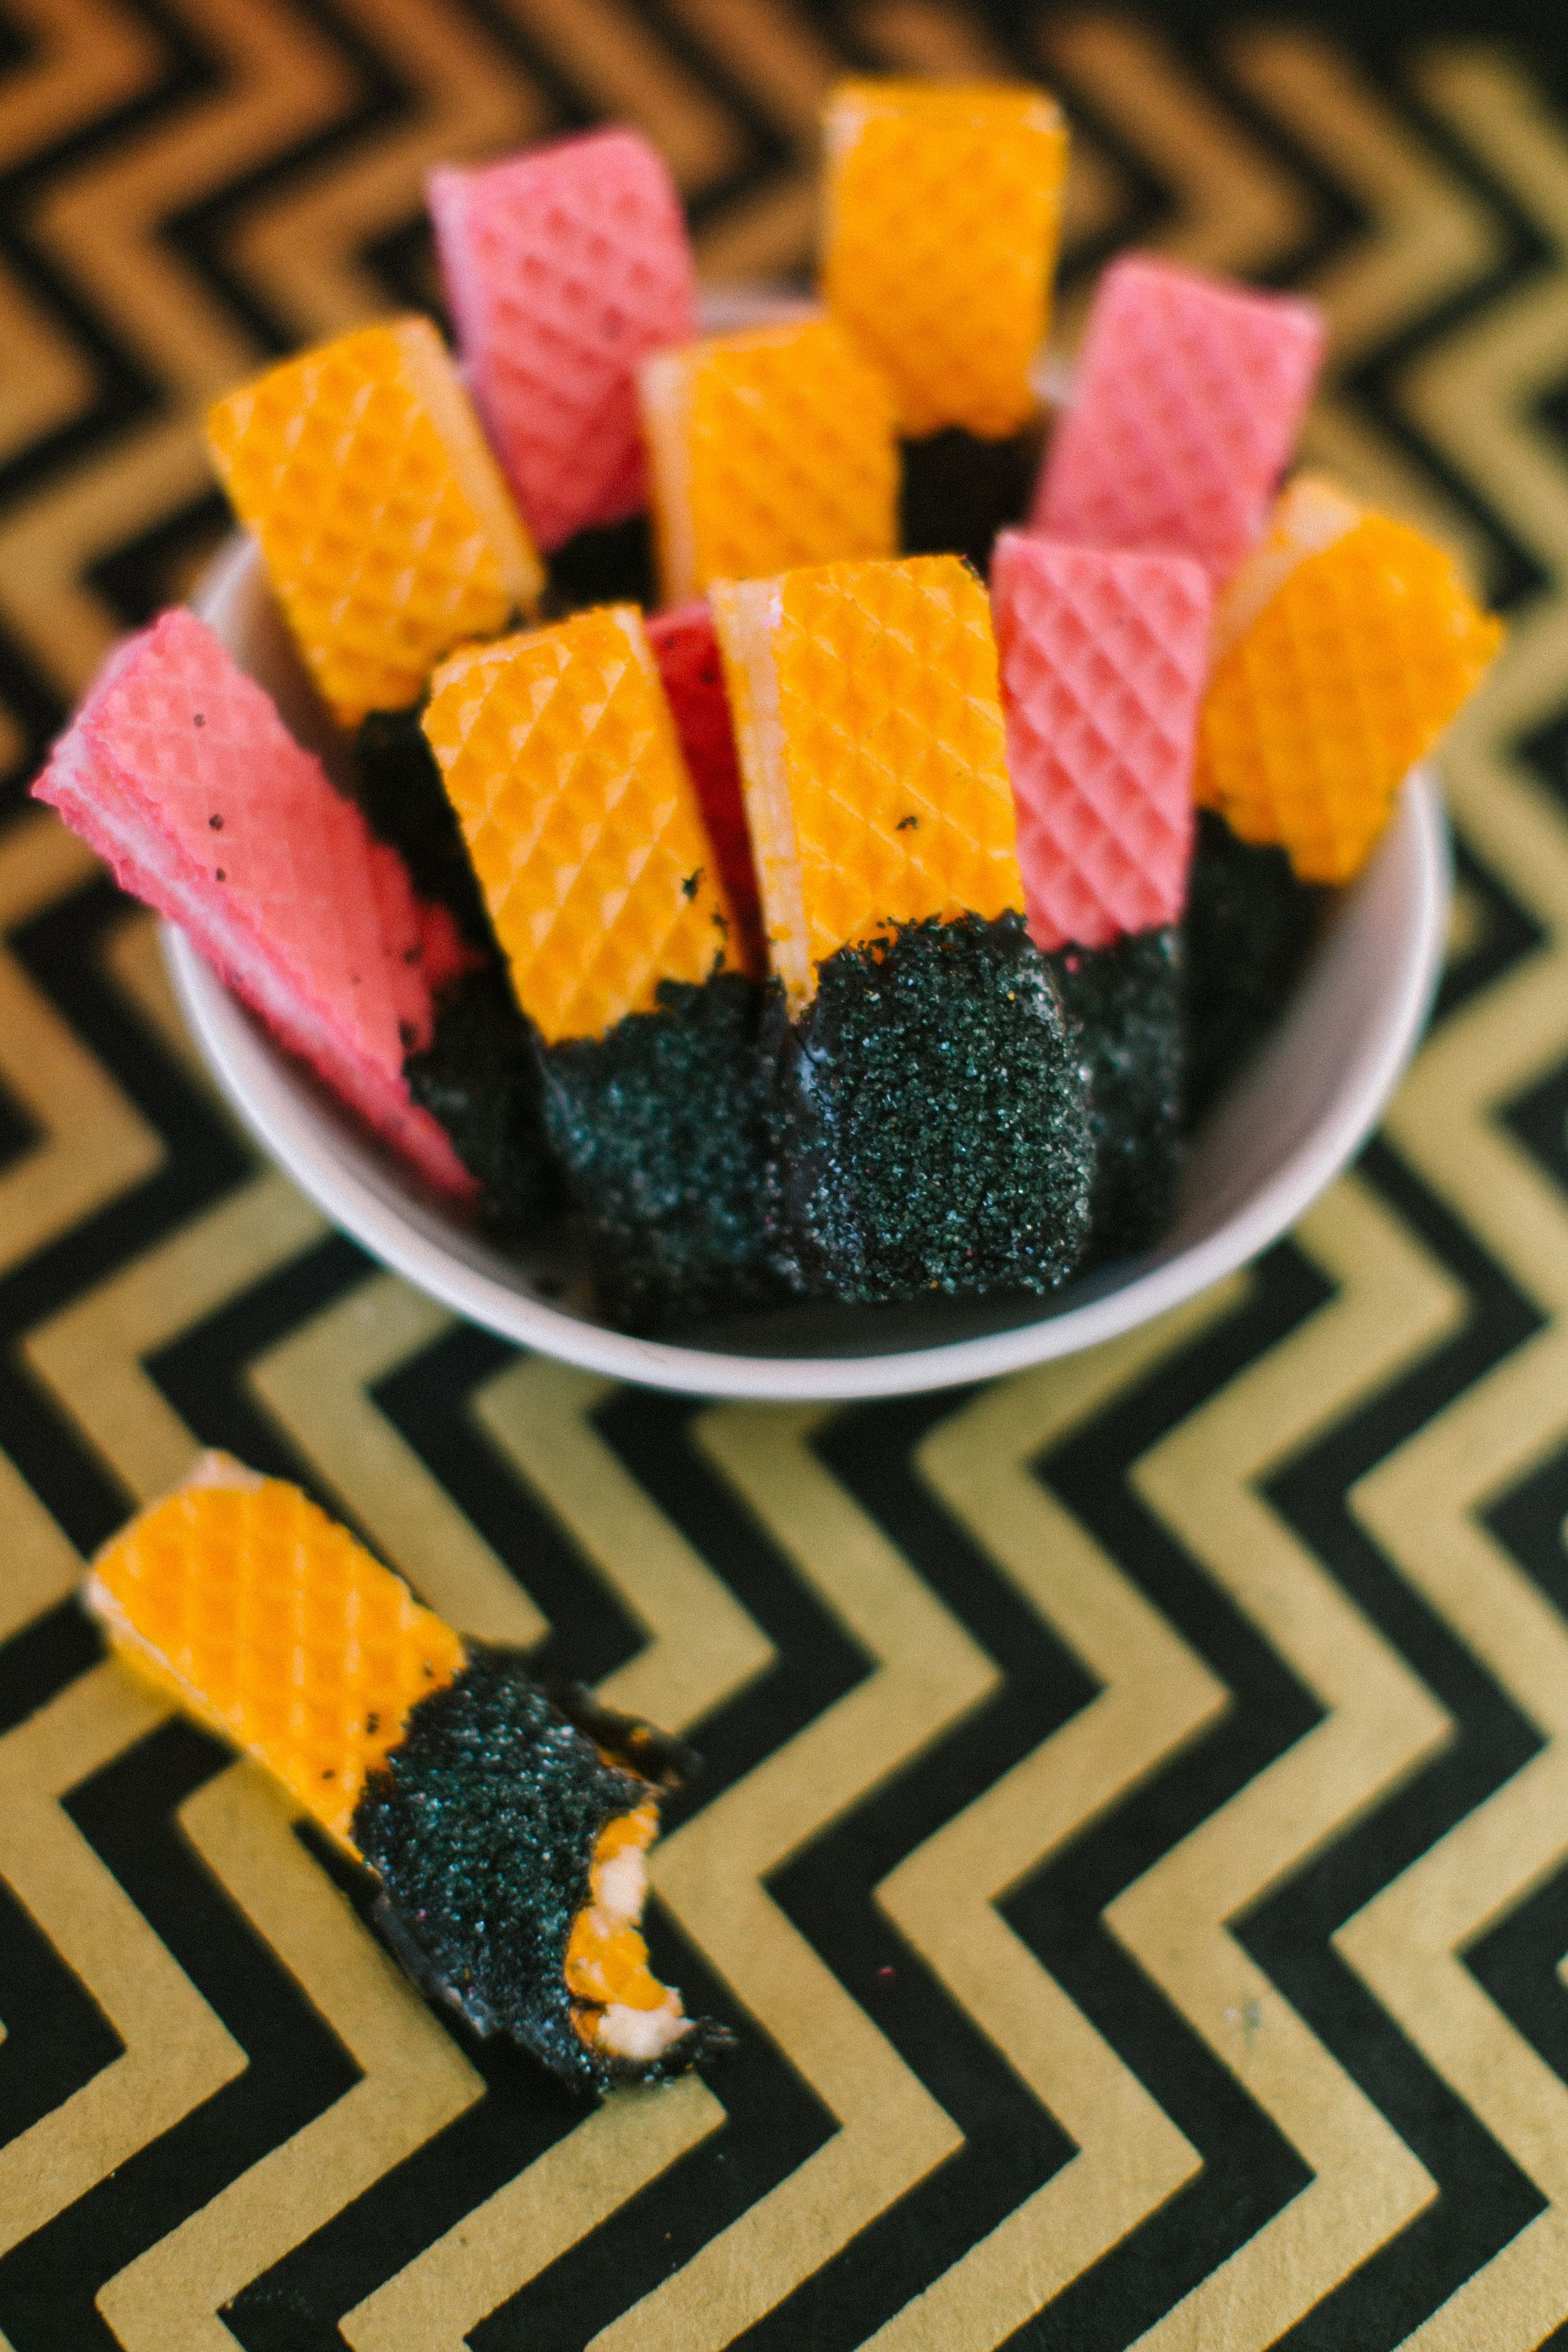 Chocolate dipped wafers - cute for halloween! #Halloween #PartyFood #Dessert.   Photography: Ruth Eileen Photography - rutheileenphotography.com